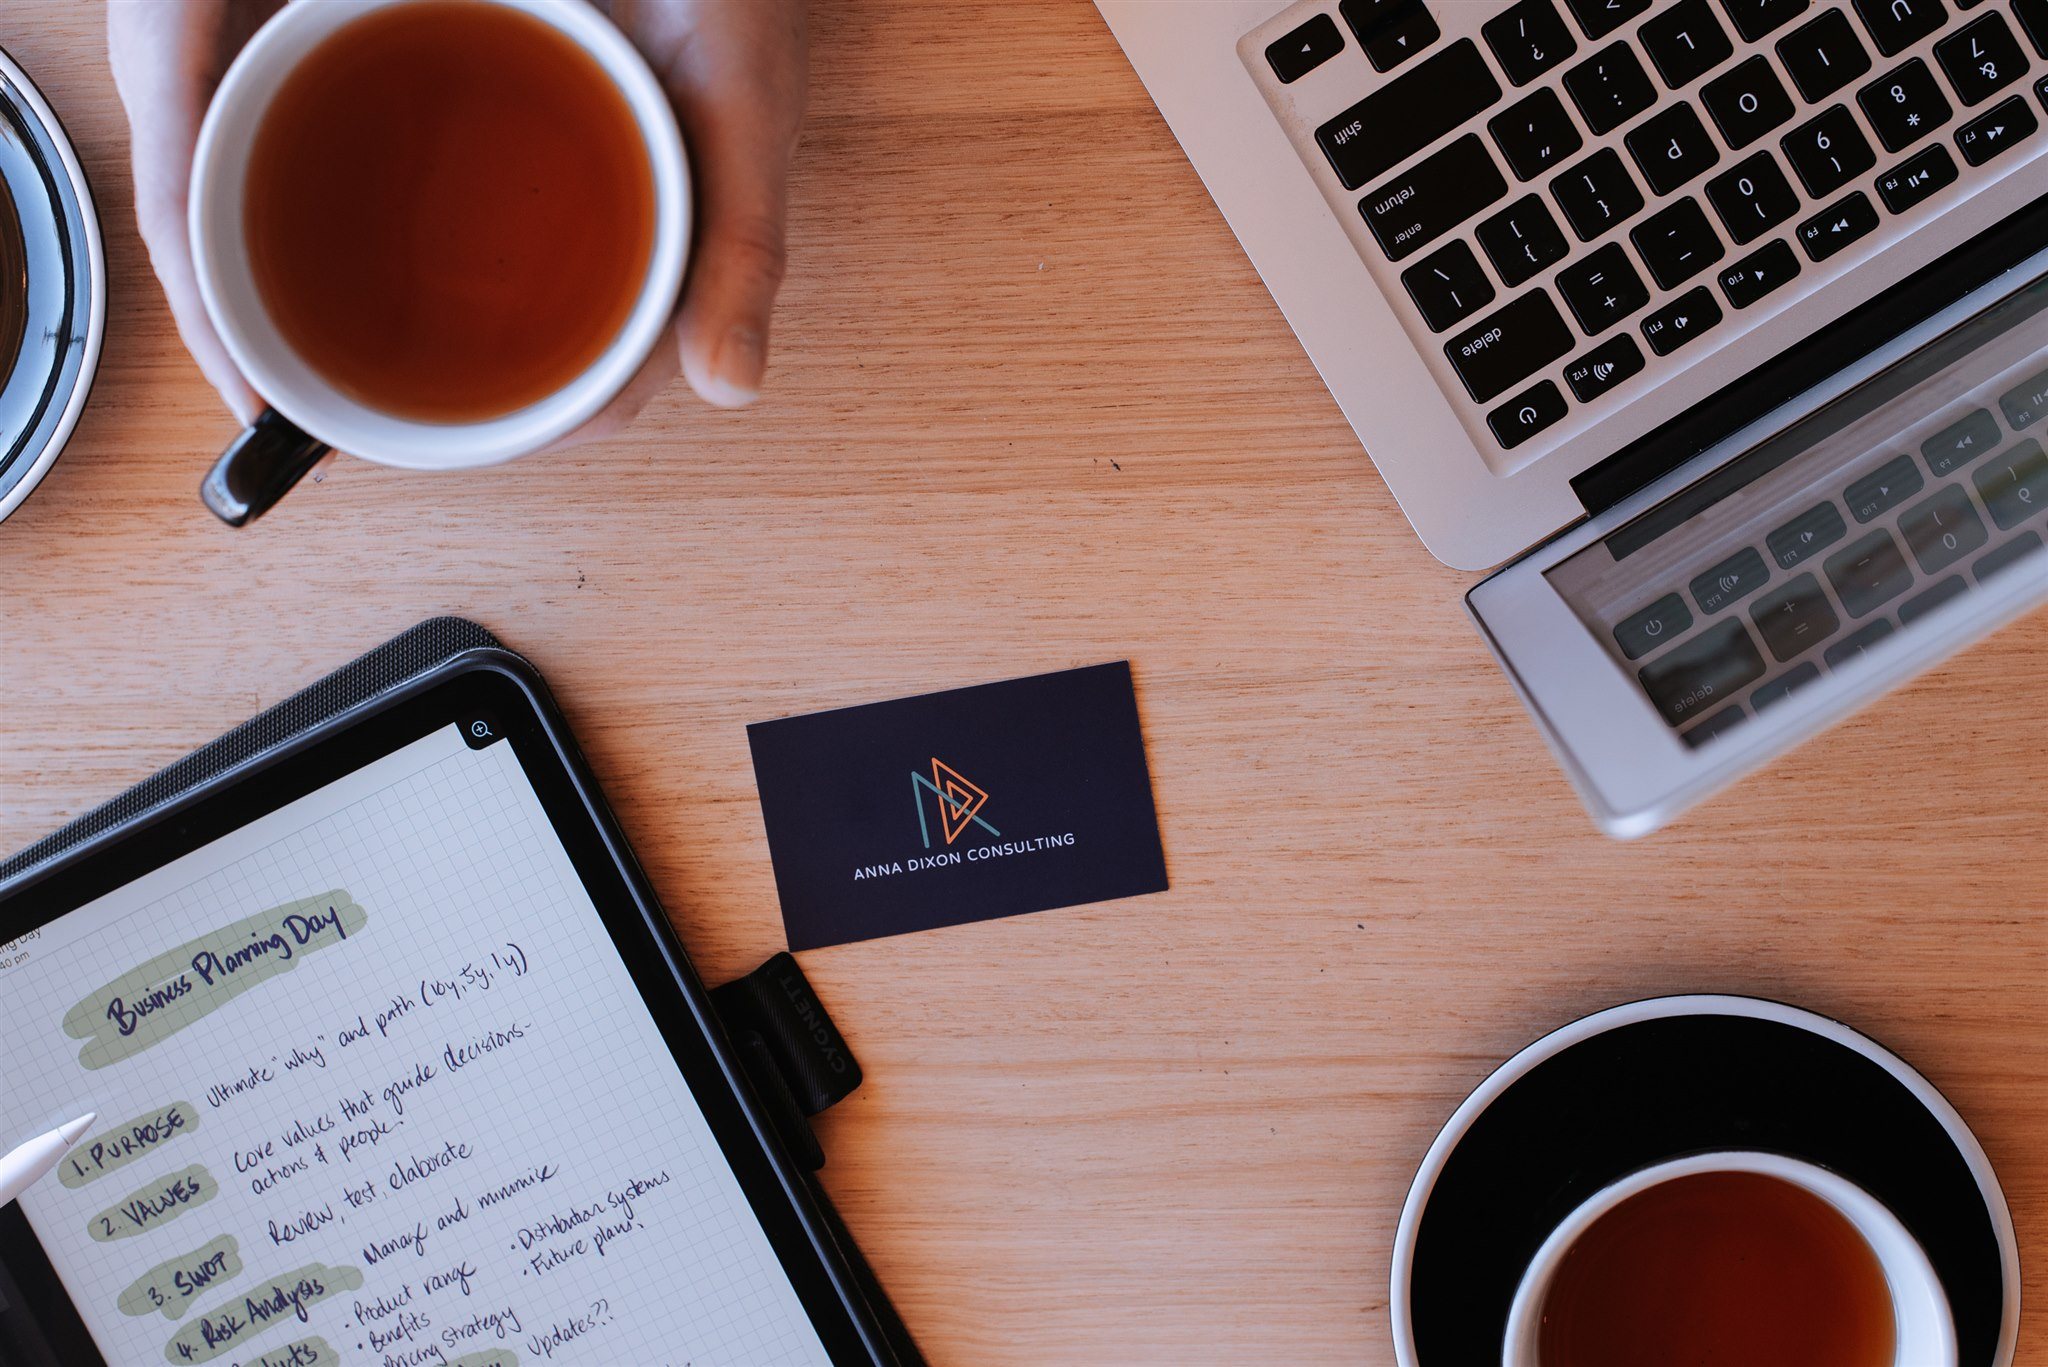 Anna Dixon Consulting business card on a table with an ipad with Business Plan outline displayed, a laptop and two drinks.